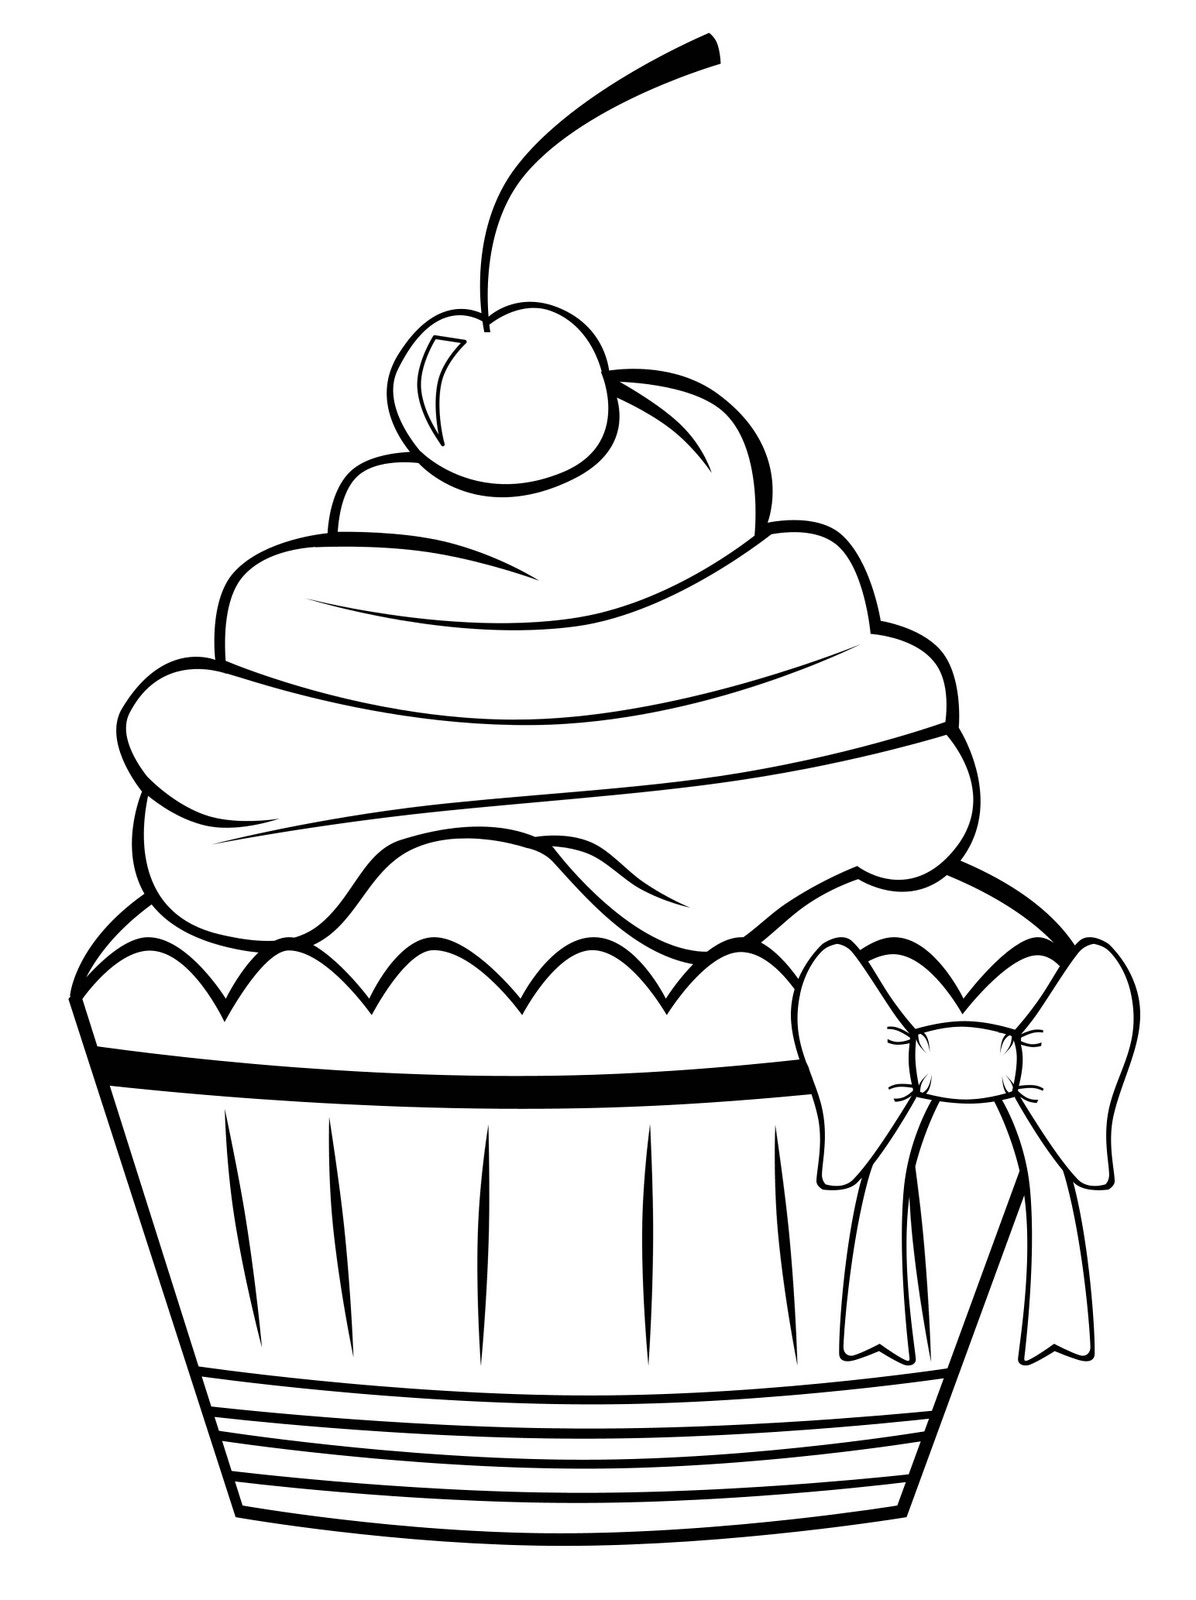 Drawing Cake Colour Cupcakes Coloring Pages Free Printable Pictures Coloring